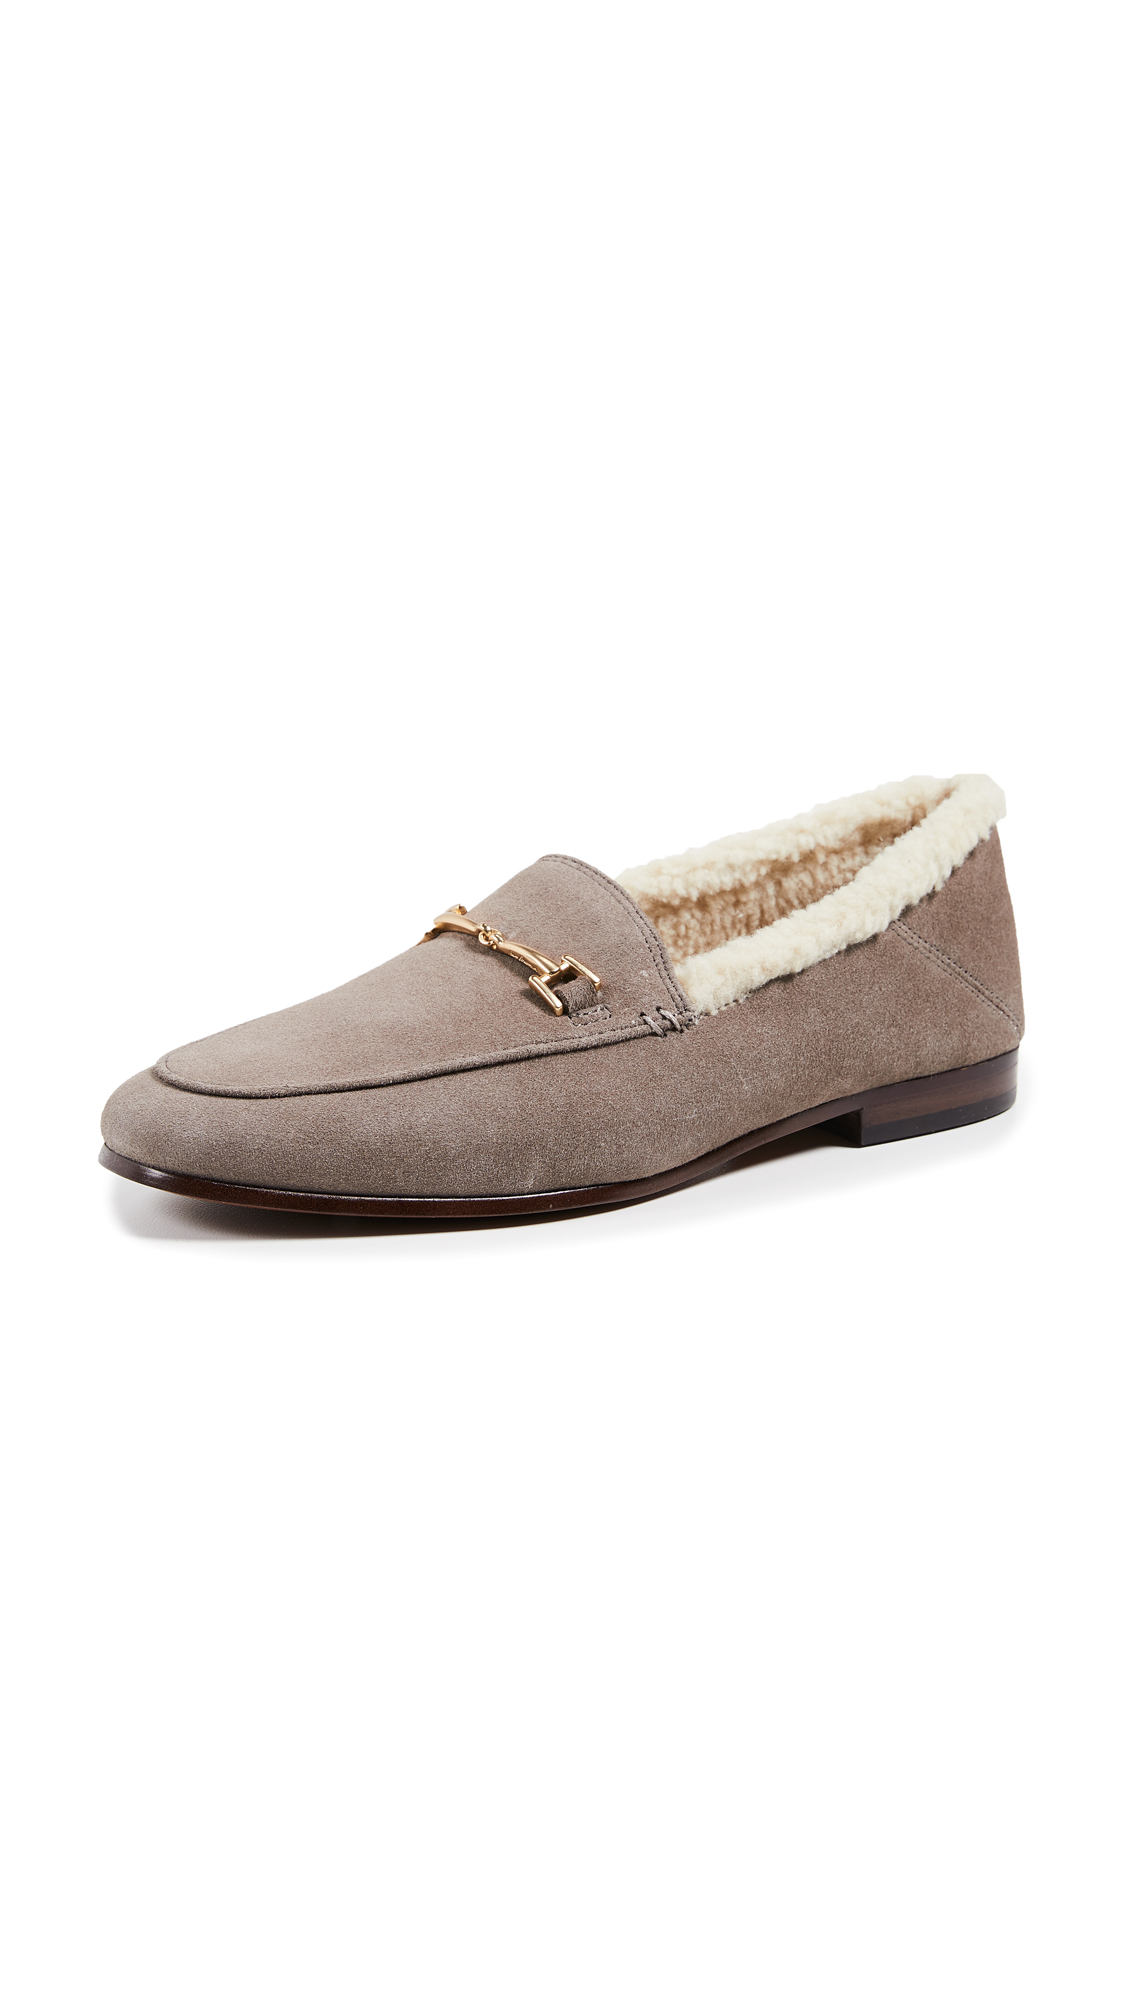 Sam Edelman Loraine Loafers - Flint Grey/Natural